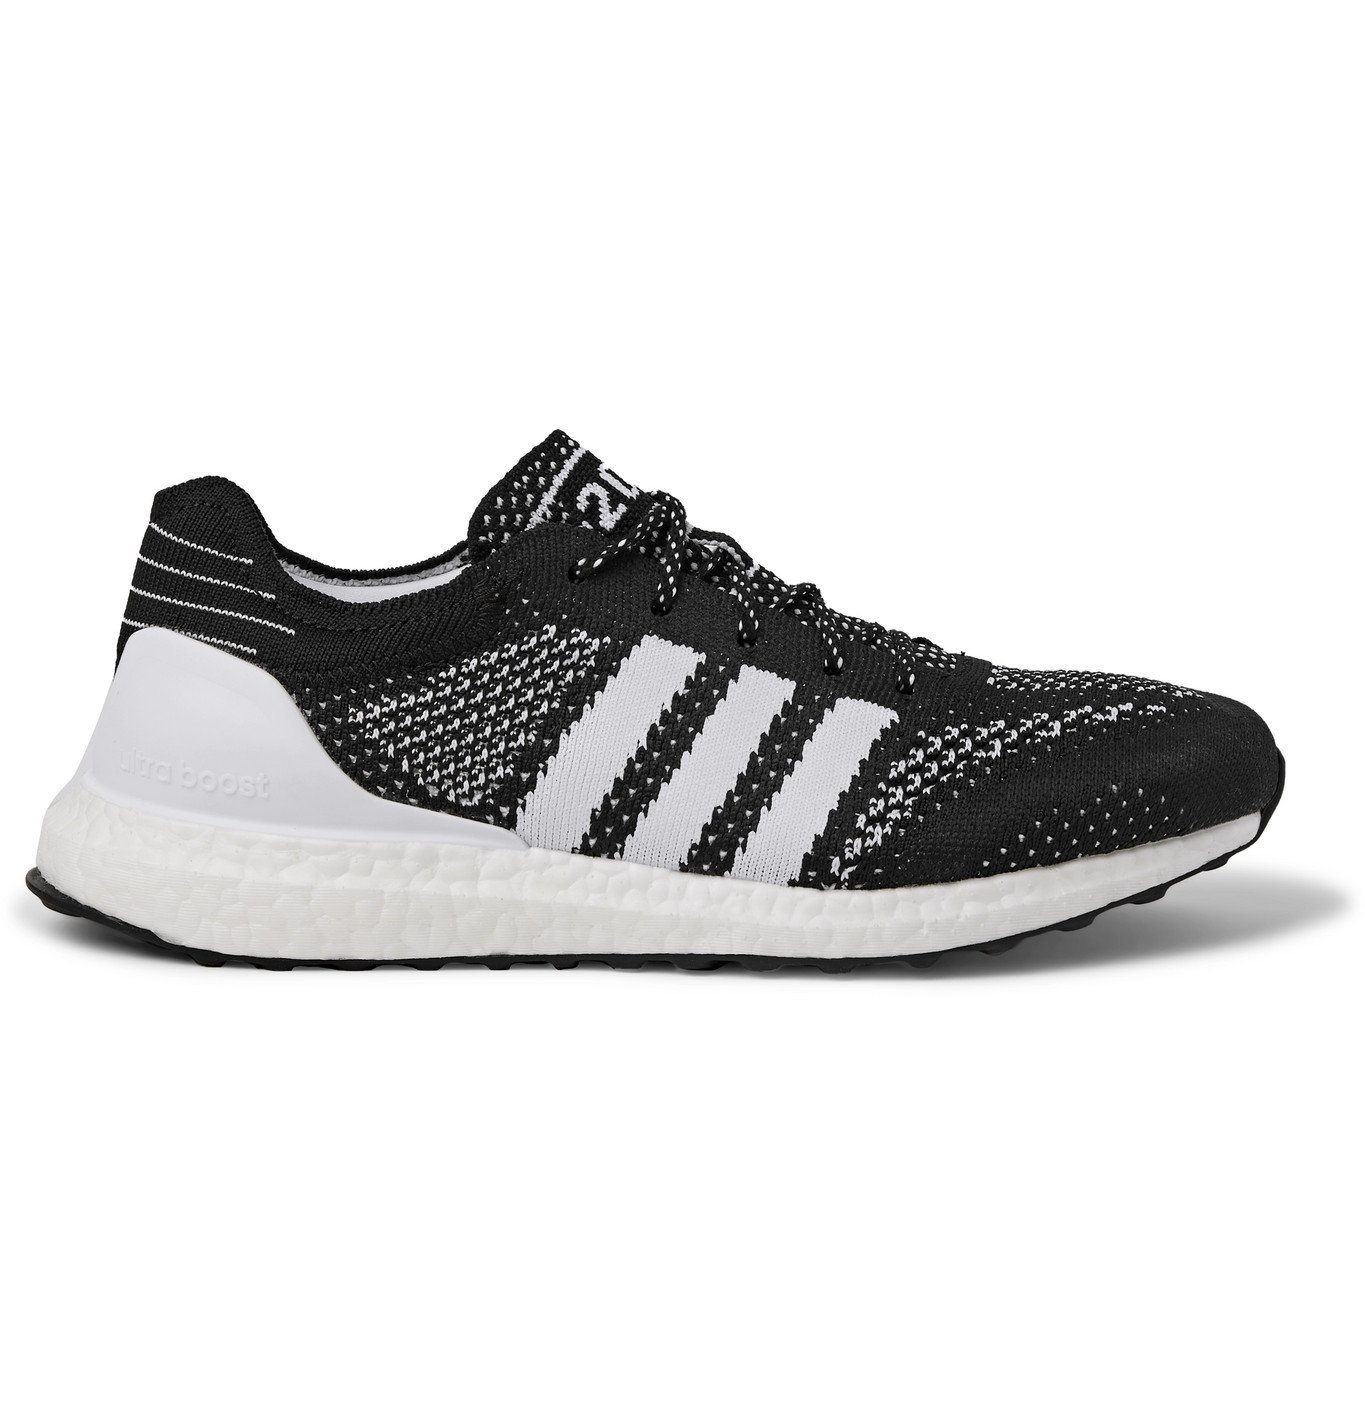 Photo: Adidas Sport - Parley UltraBOOST DNA Prime Rubber-Trimmed Primeknit Running Sneakers - Black